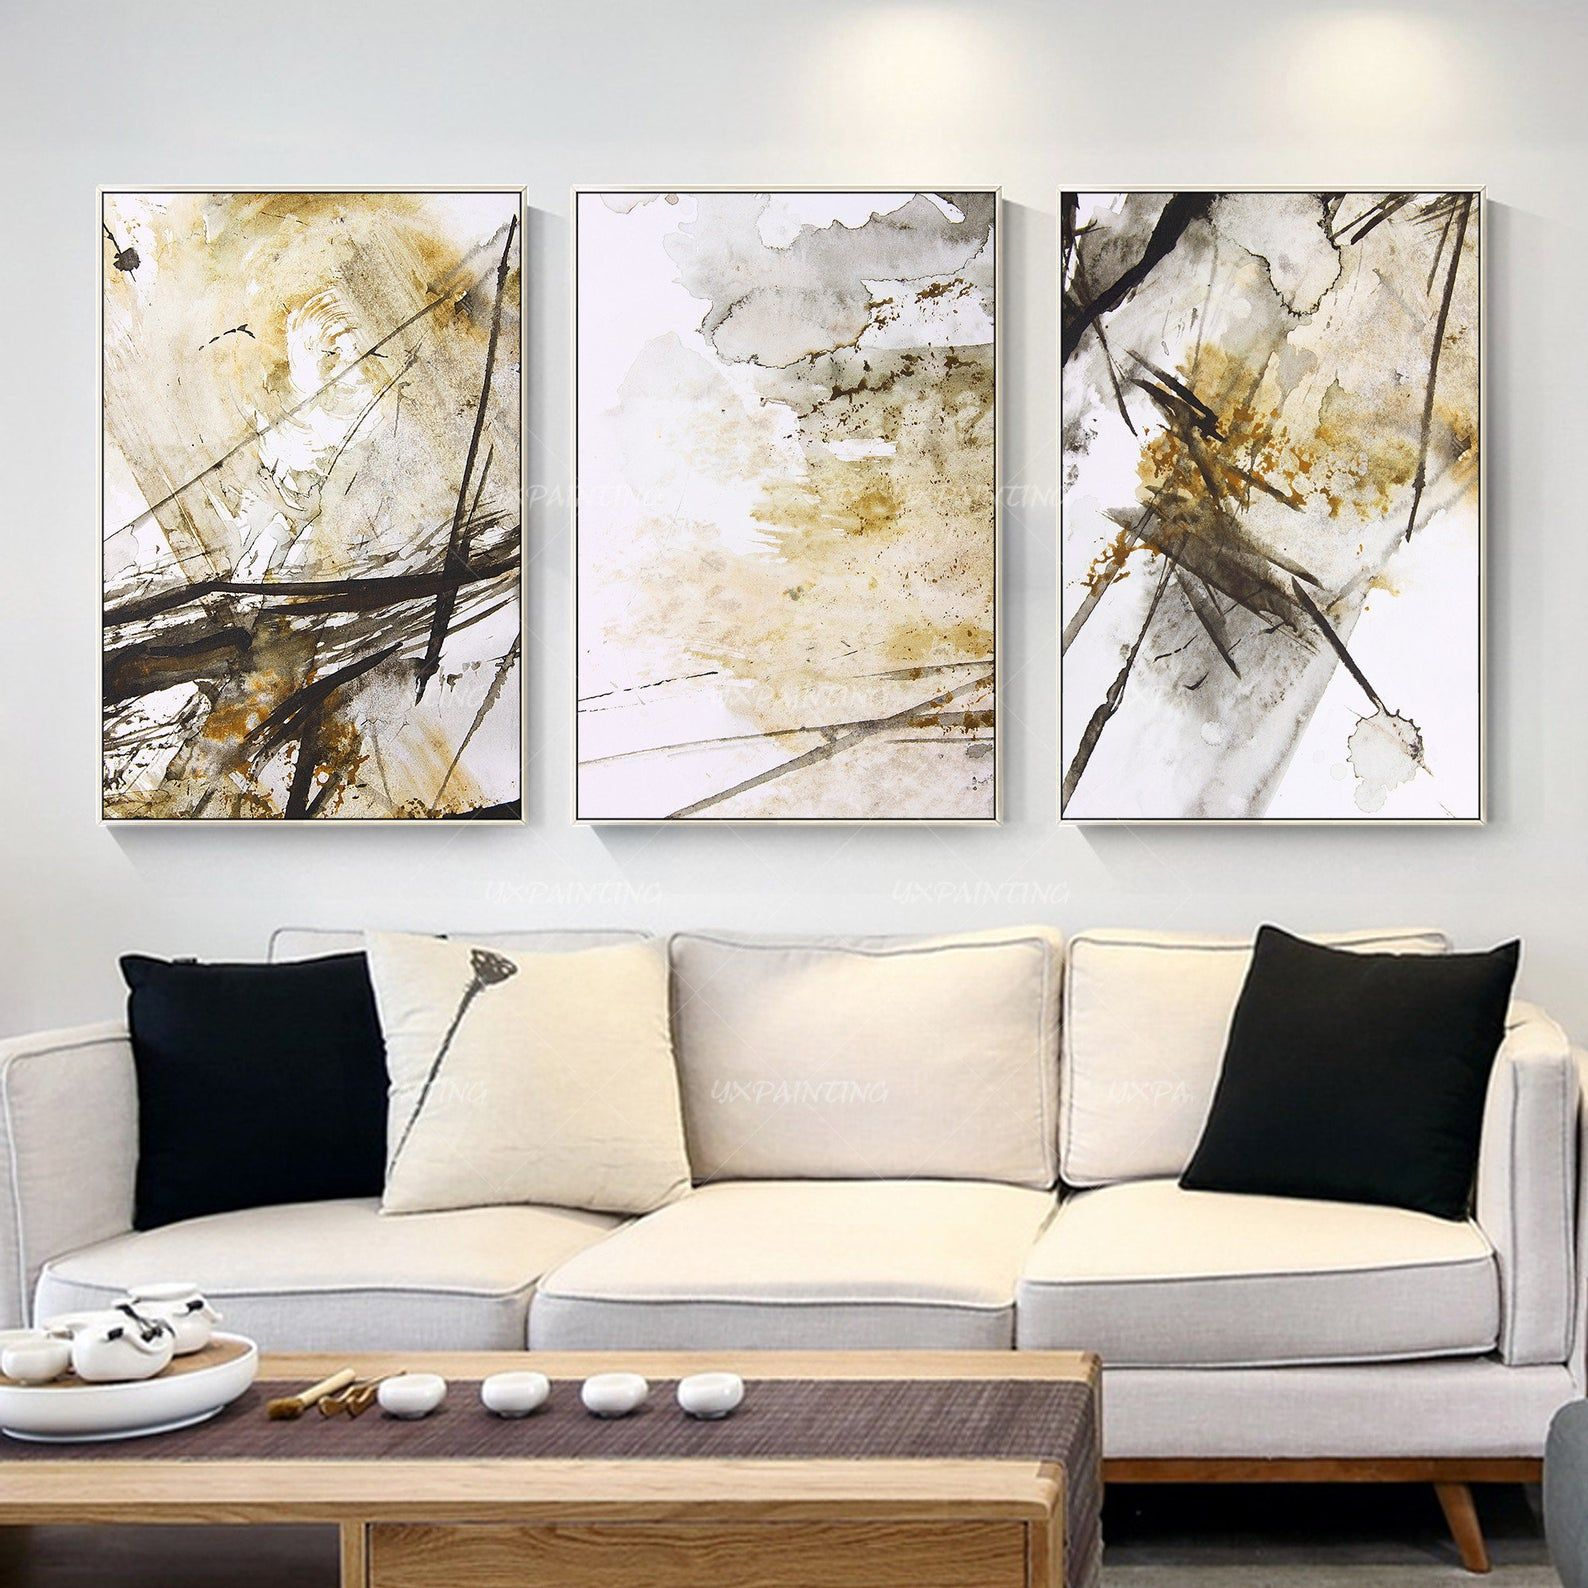 3 Pieces Wall Art Abstract Print Art Painting Set Of 3 Wall Etsy 3 Piece Wall Art Abstract Canvas Painting Painting Frames